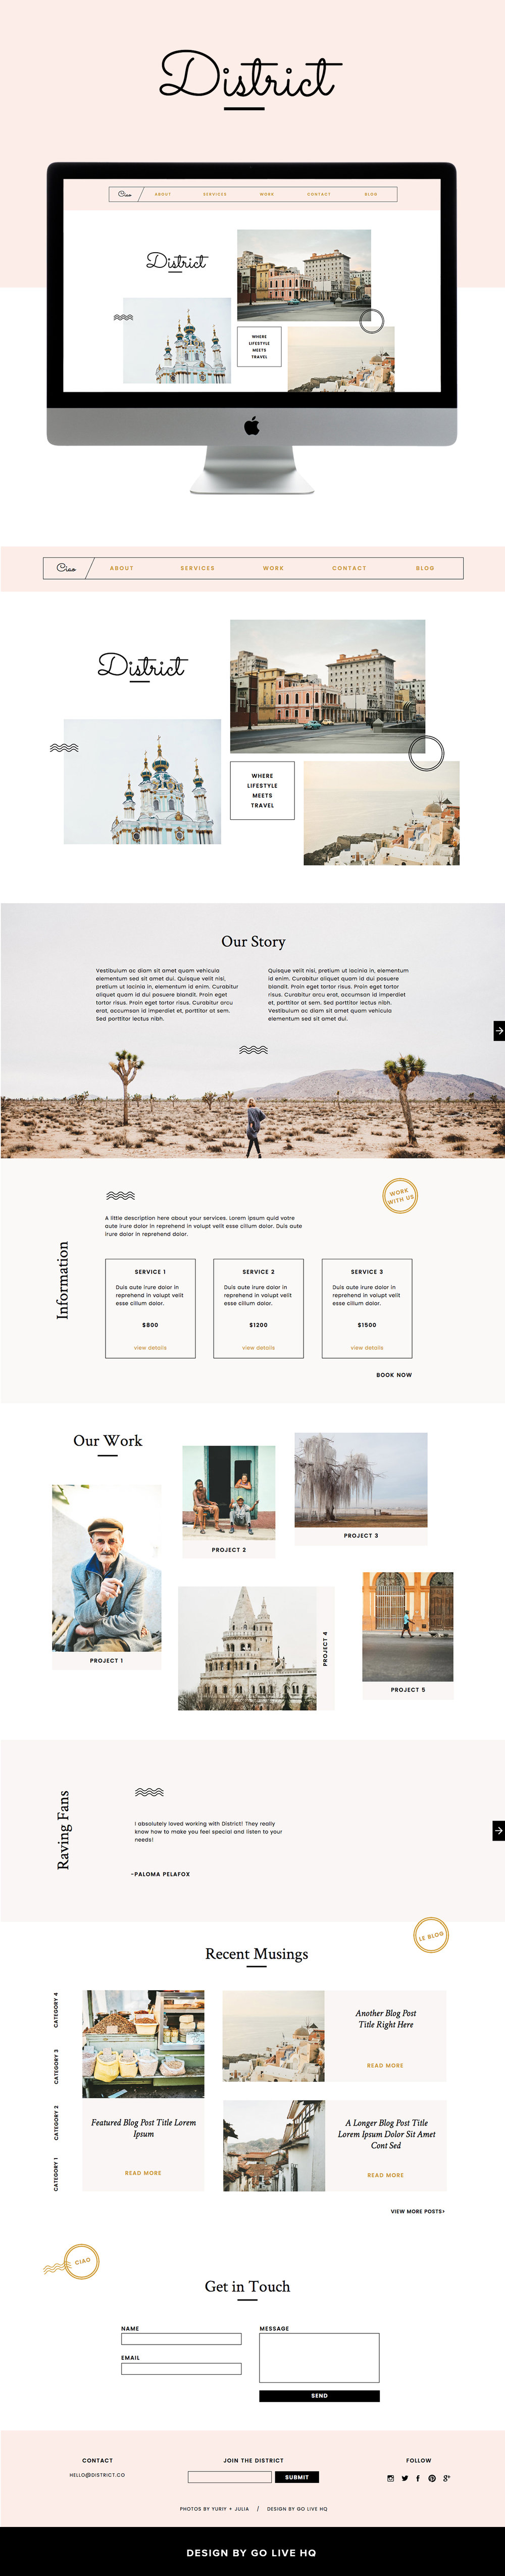 pretty modern showit website theme by Go Live Hq